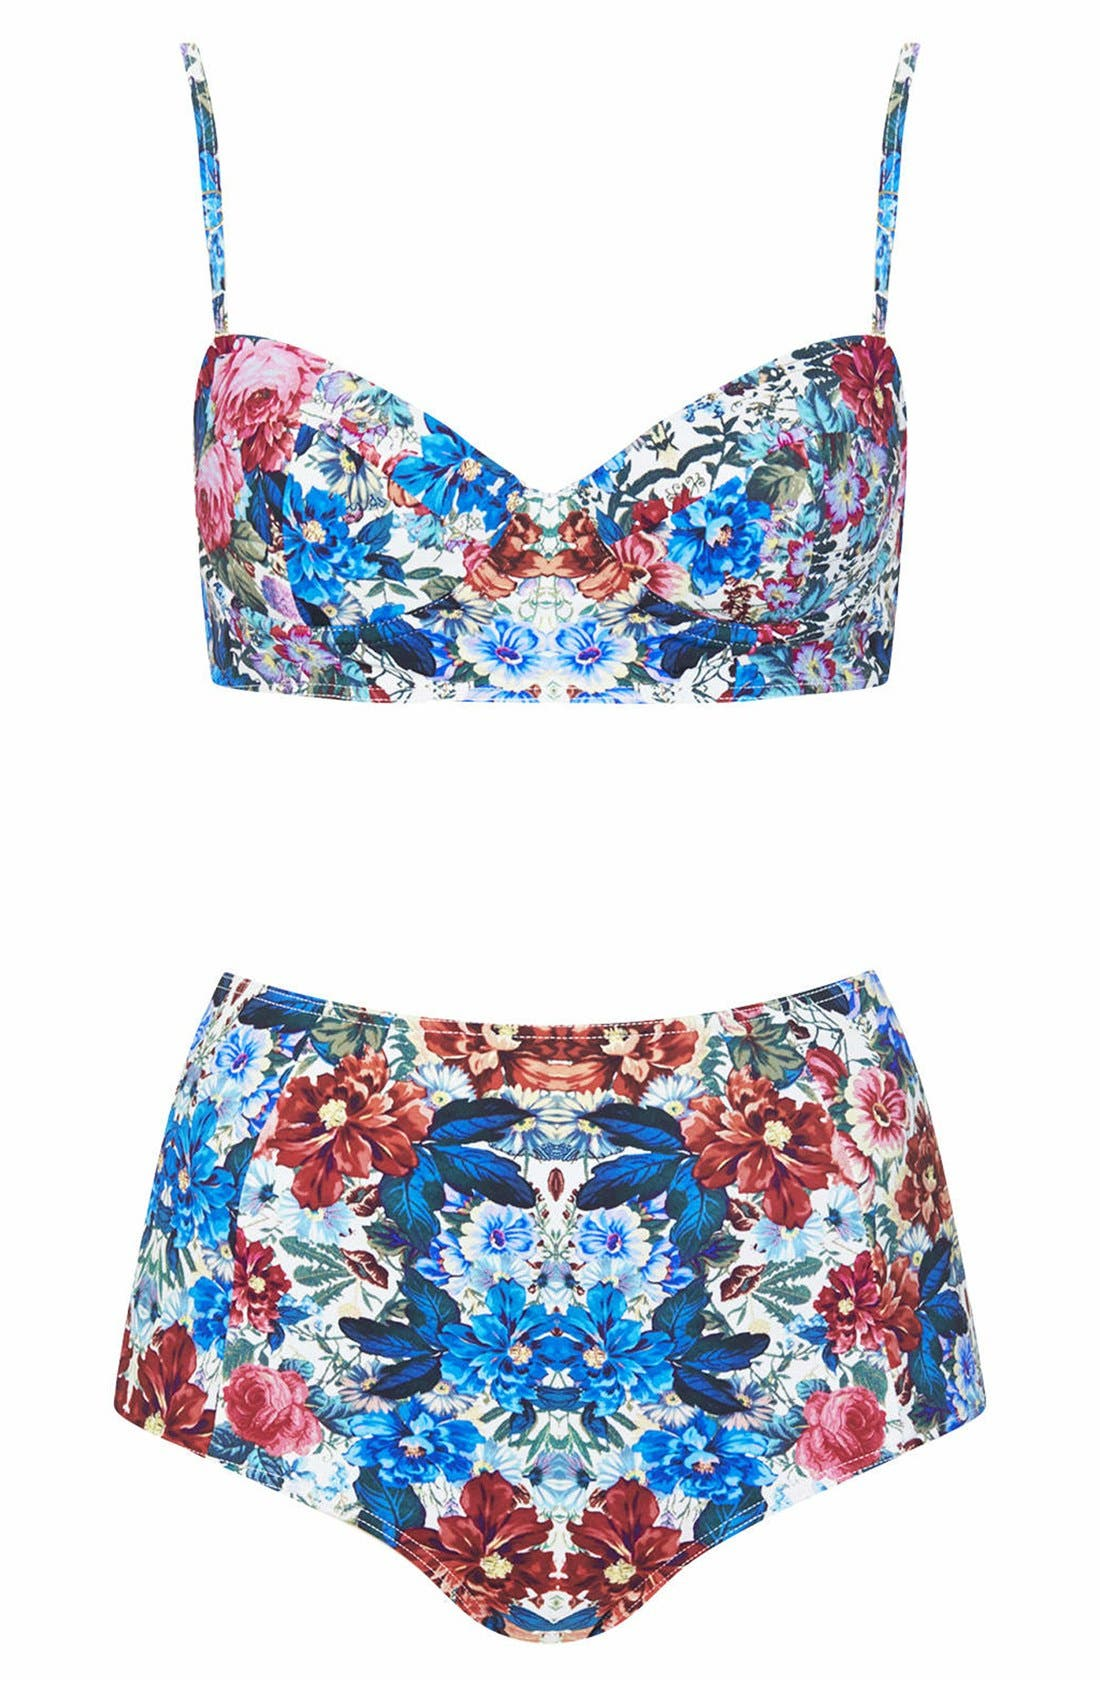 Alternate Image 1 Selected - Topshop Floral Bikini Set